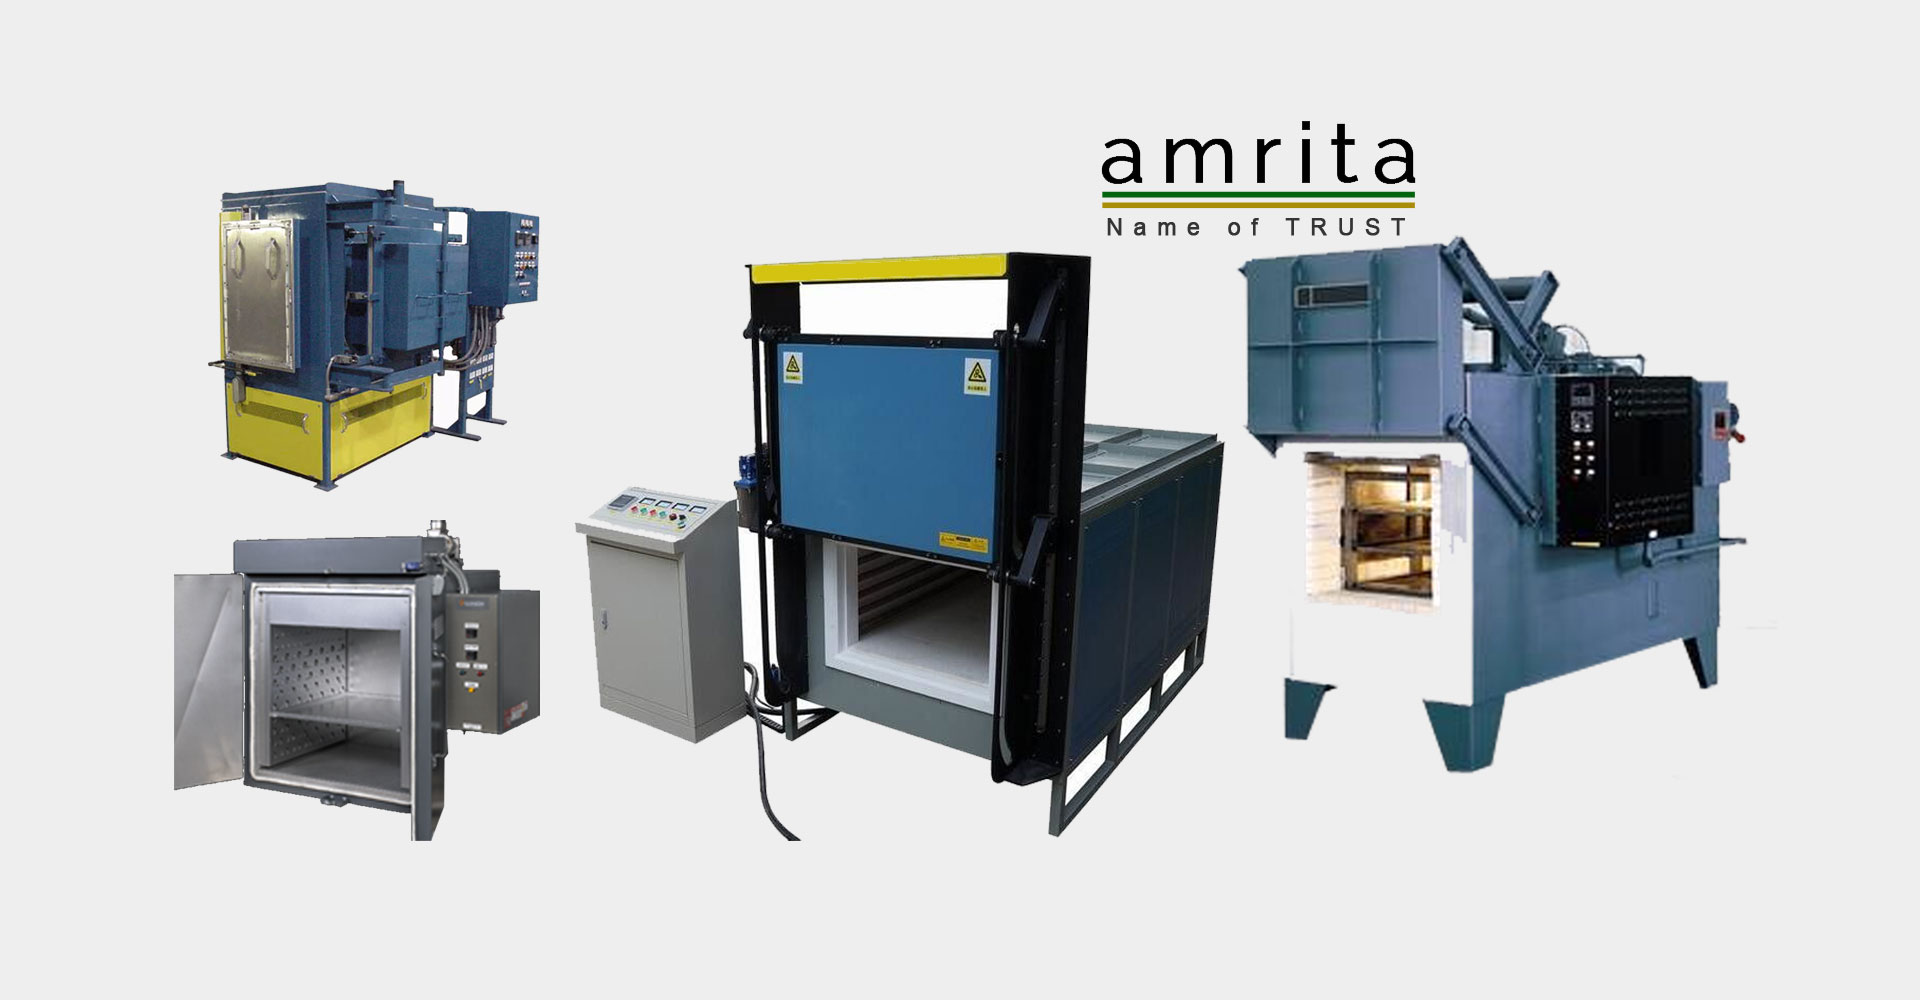 Amrita Thermal Equipment